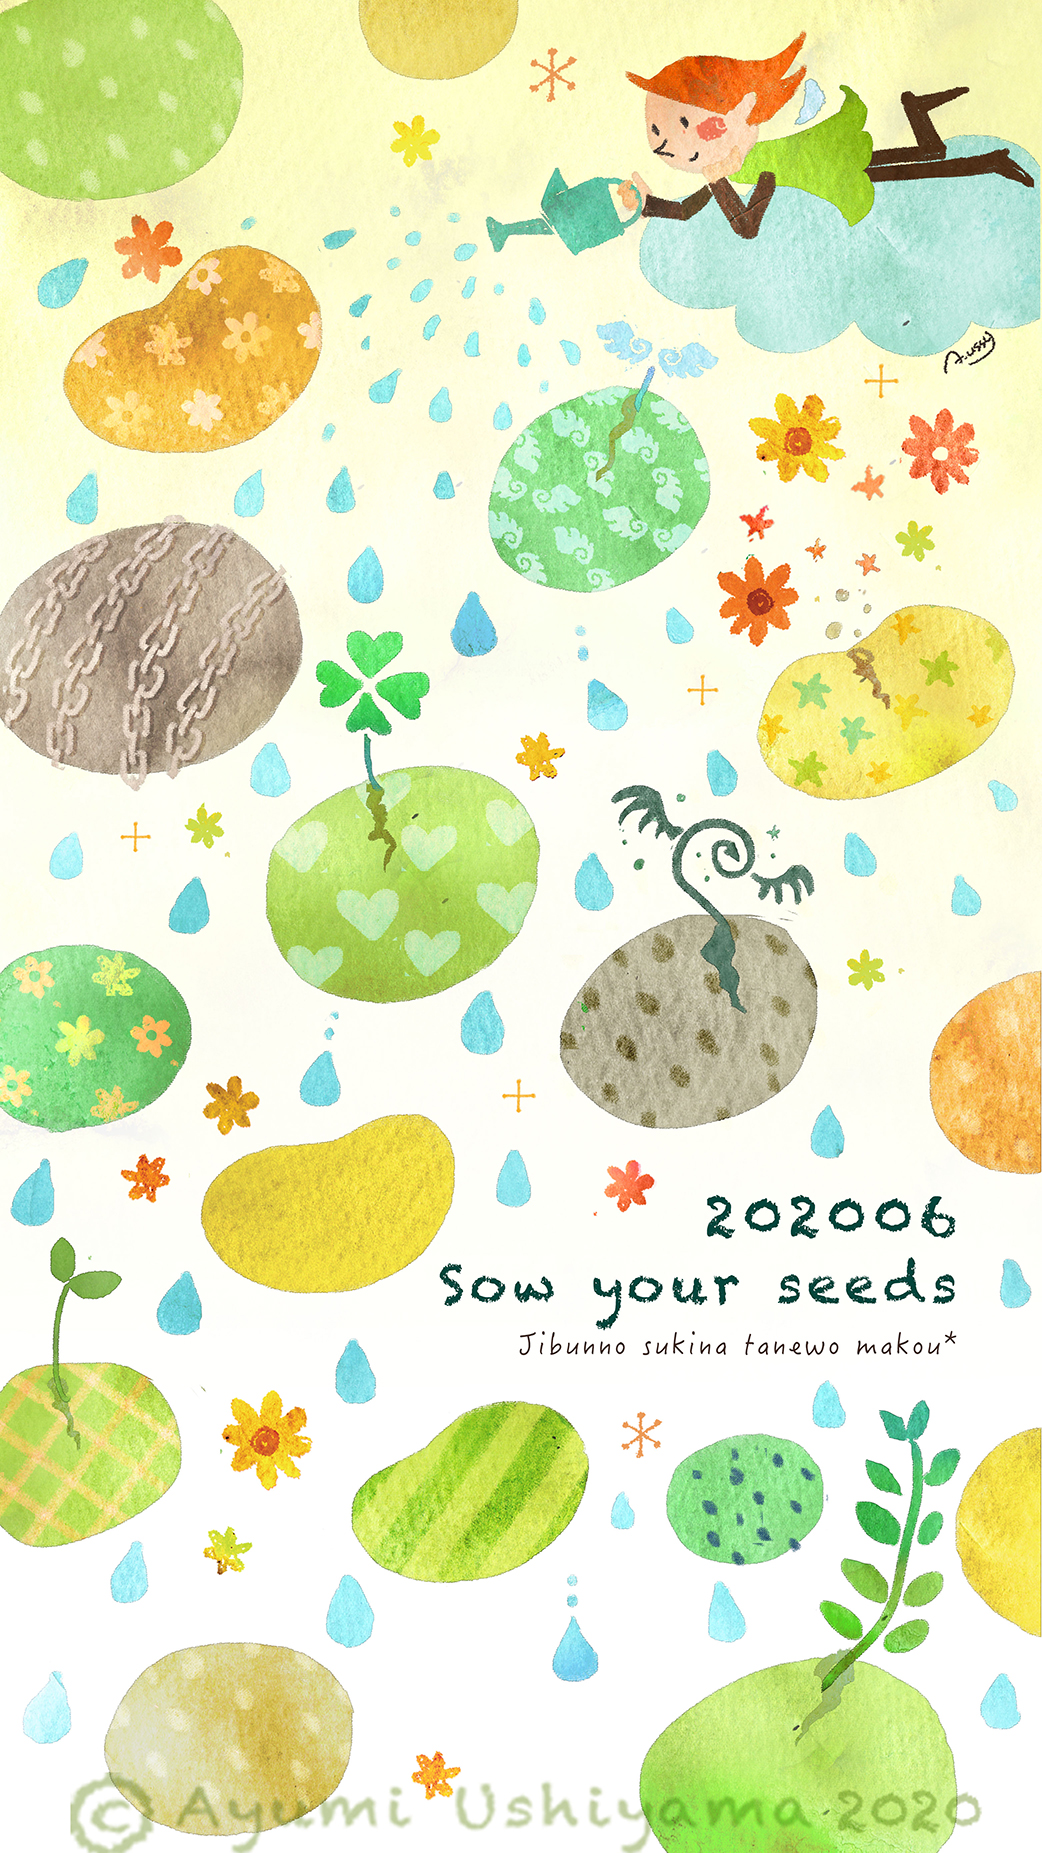 2020.06『Sow your seeds』ローマ字